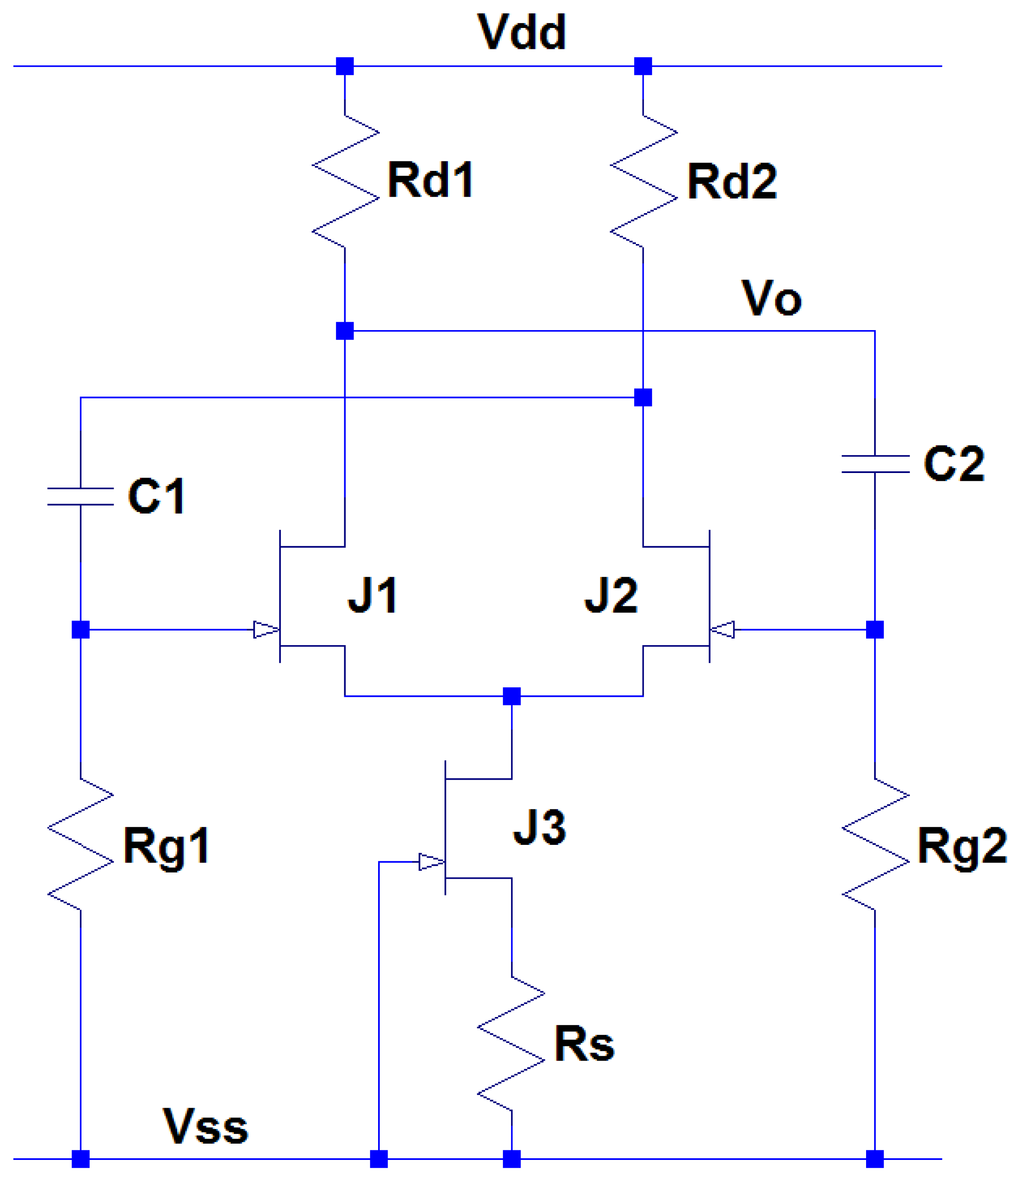 Sensors Free Full Text A Silicon Carbide Wireless Temperature Lm741hc Operational Amplifier As An Astable Oscillator Circuit Output 13 01884f8 1024